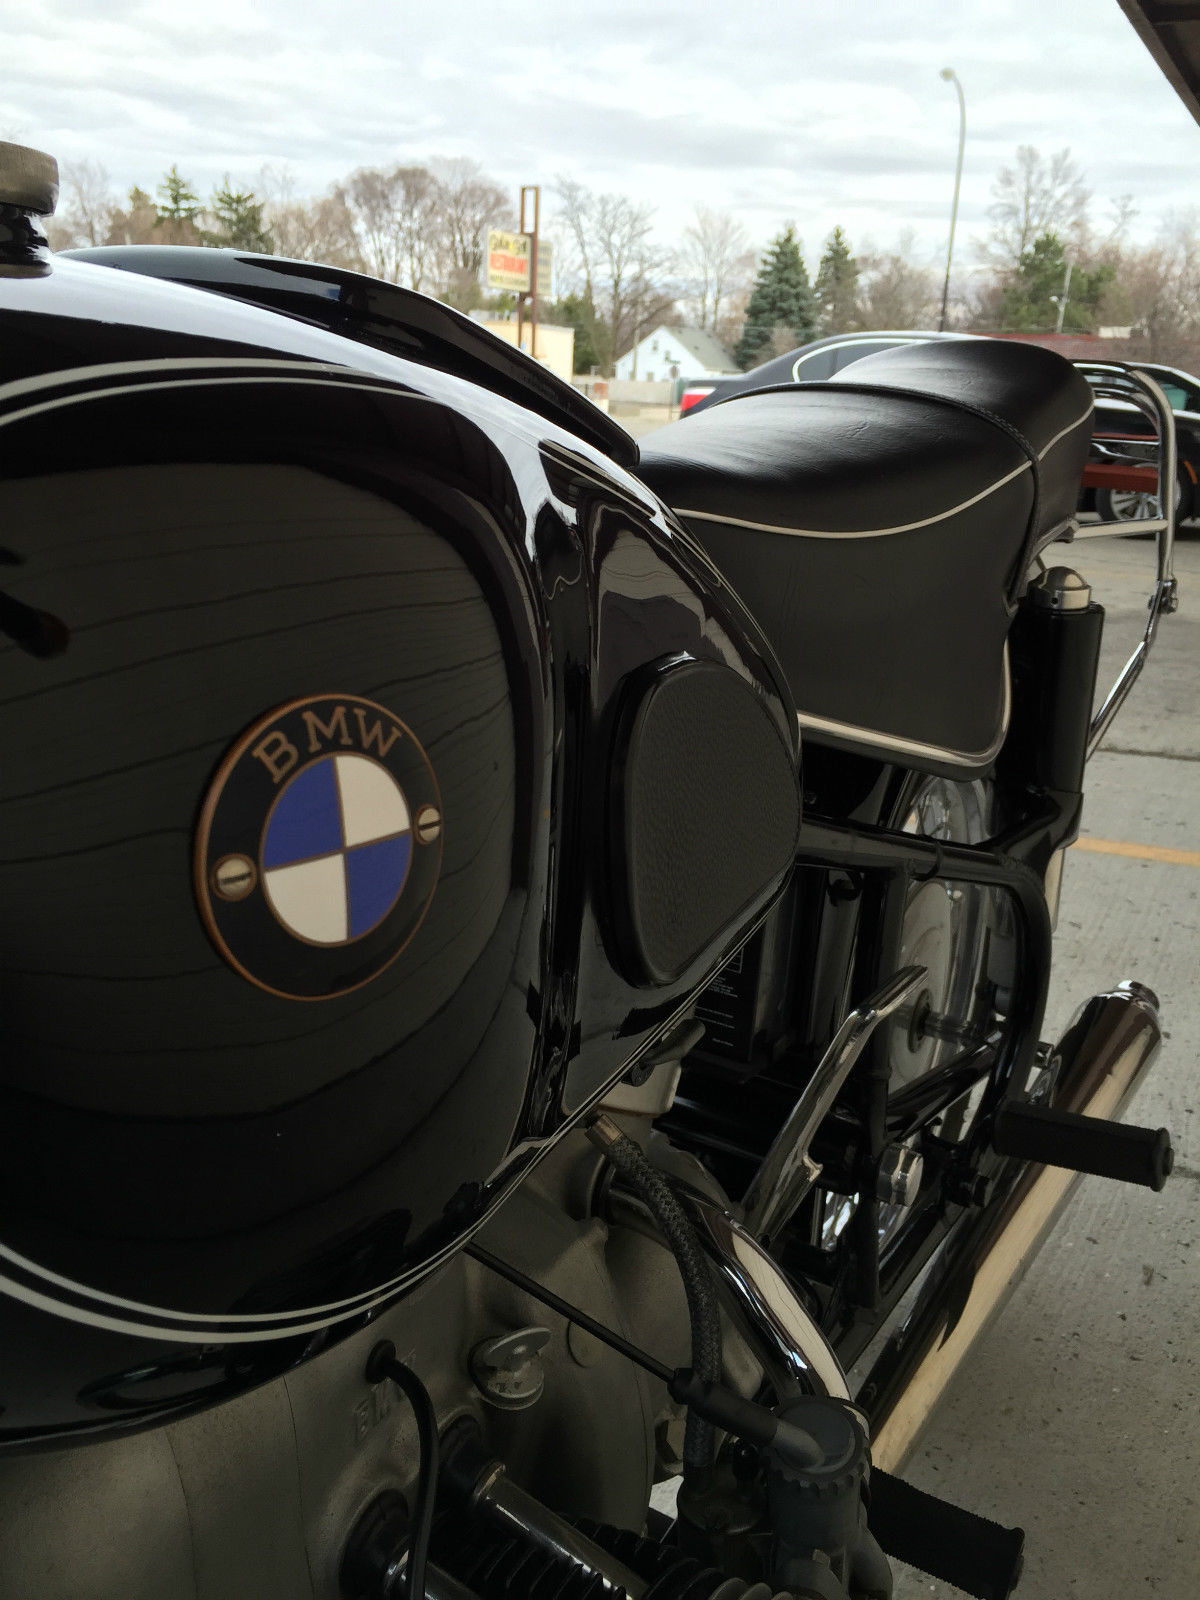 BMW R60/2 - 1965 - Fuel Tank, BMW Badge, Knee Pad and Seat.